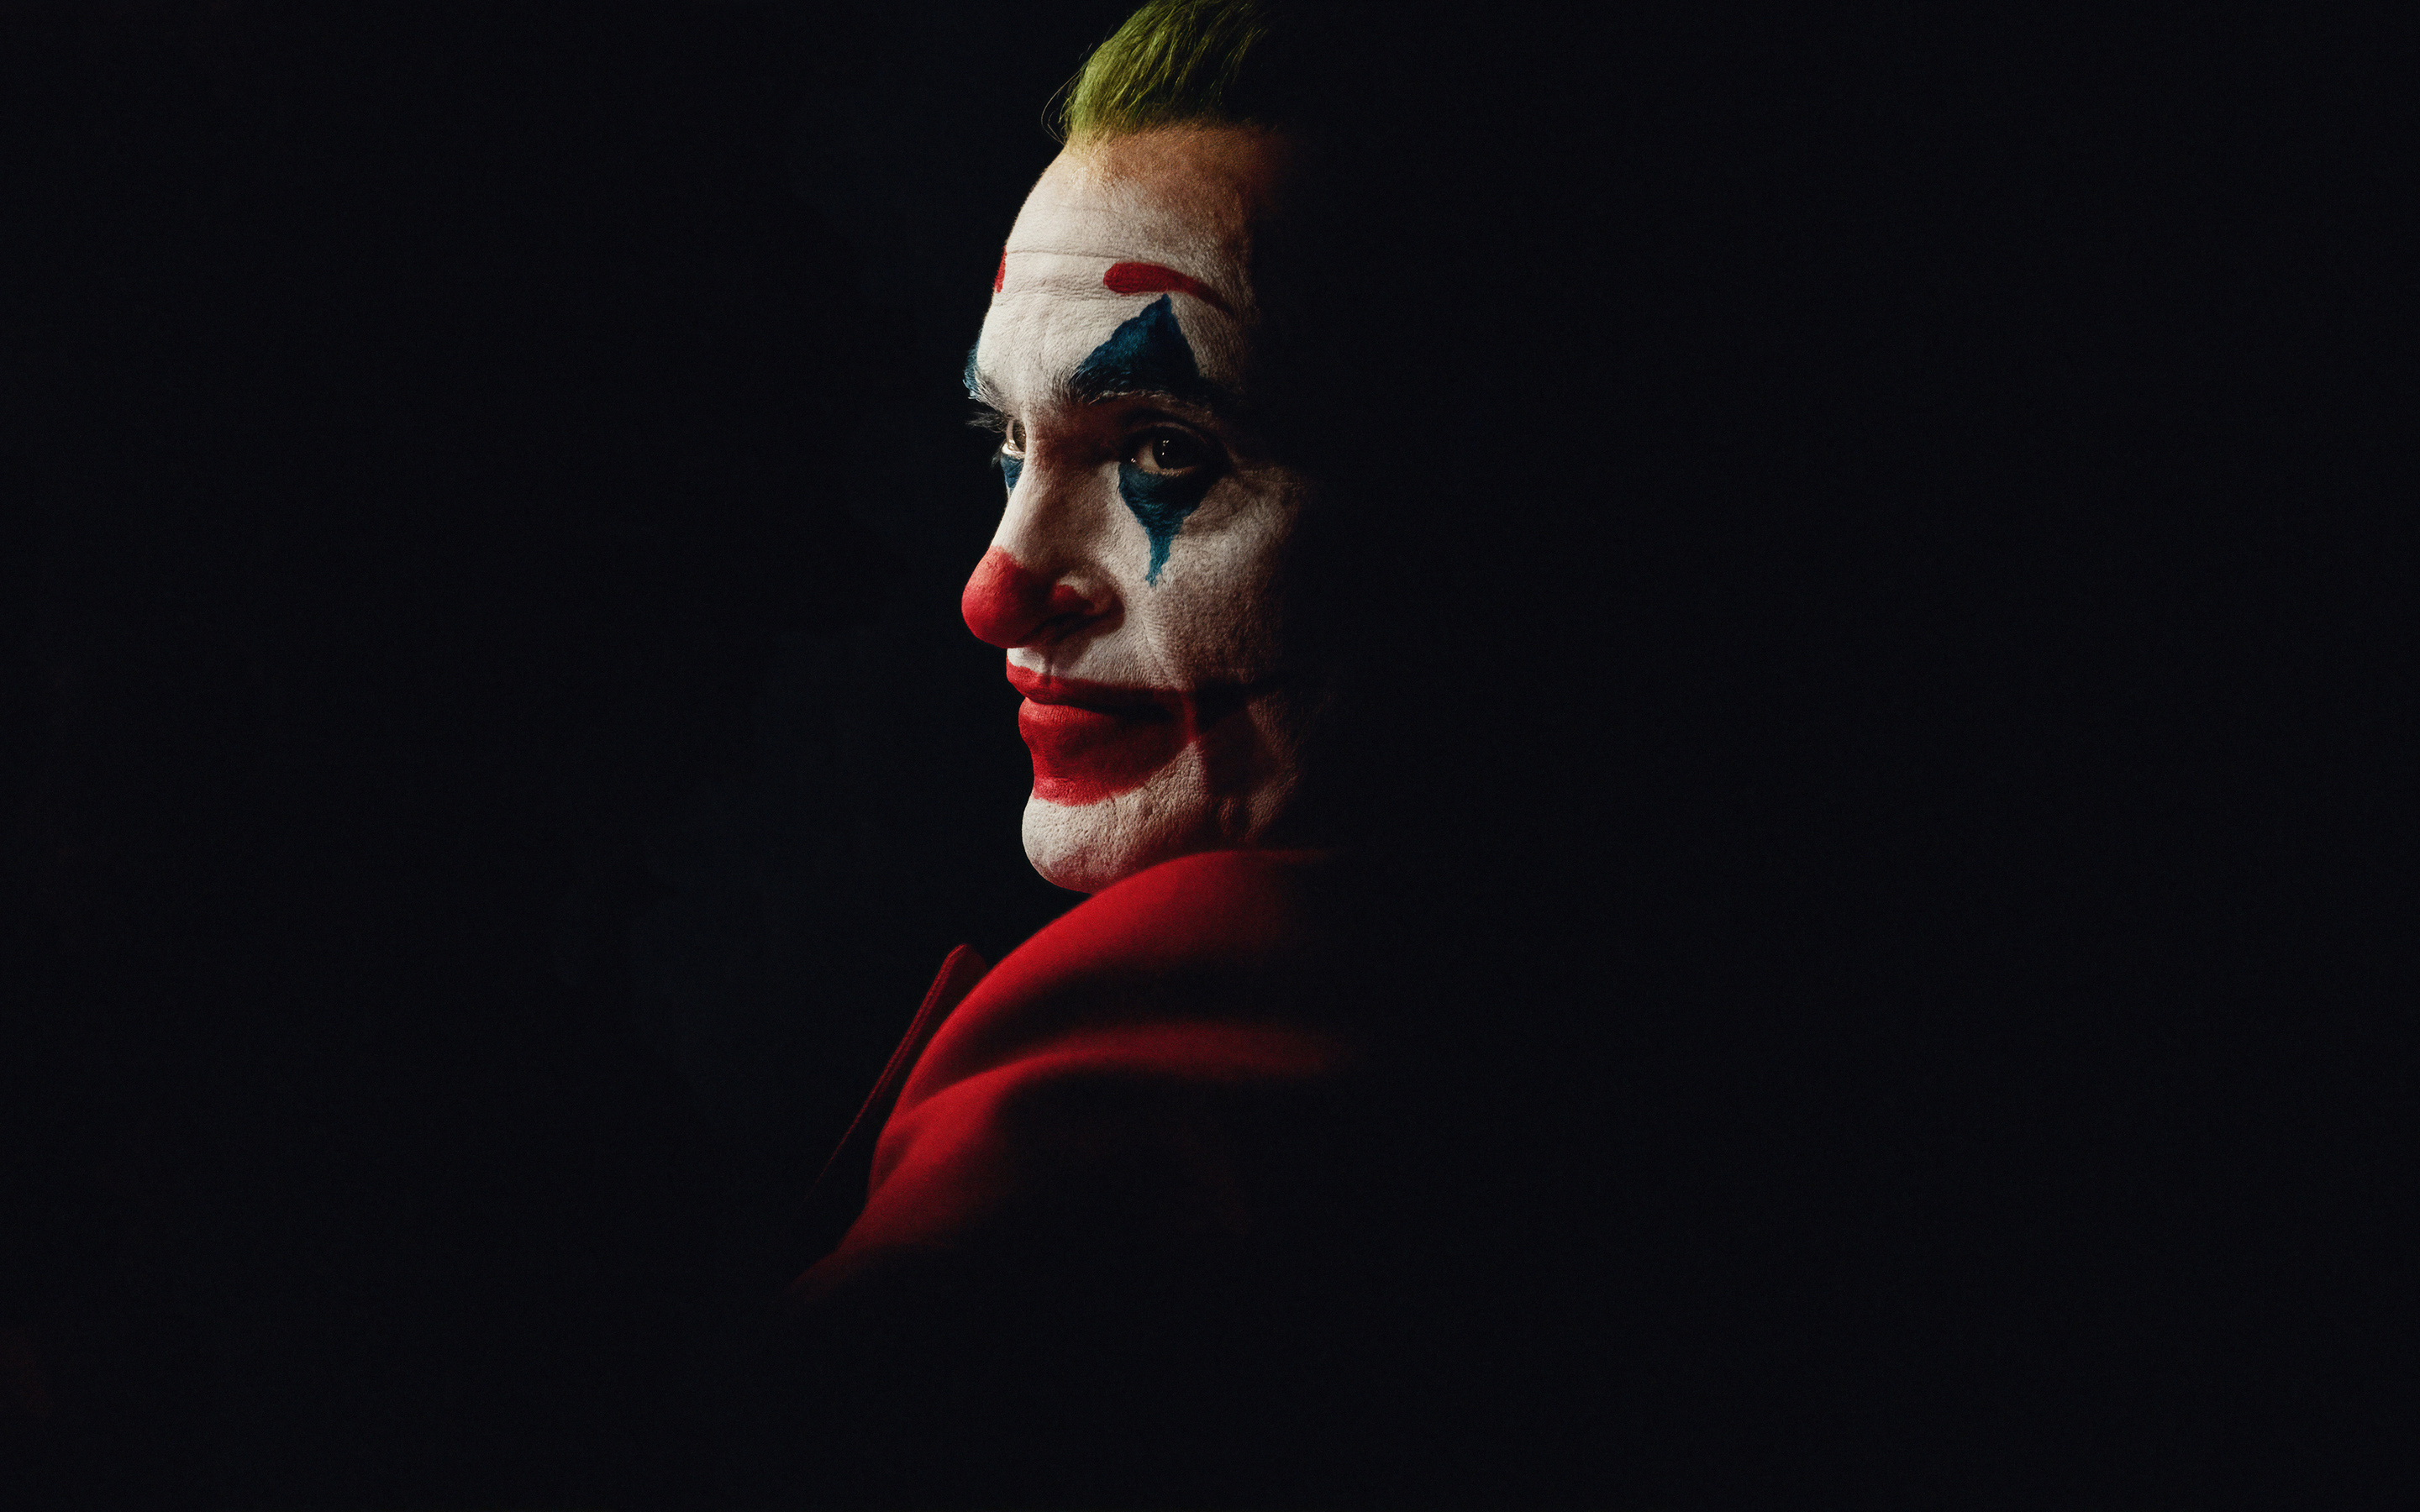 2880x1800 The Joker Joaquin Phoenix Dark 4k Macbook Pro Retina Hd 4k Wallpapers Images Backgrounds Photos And Pictures